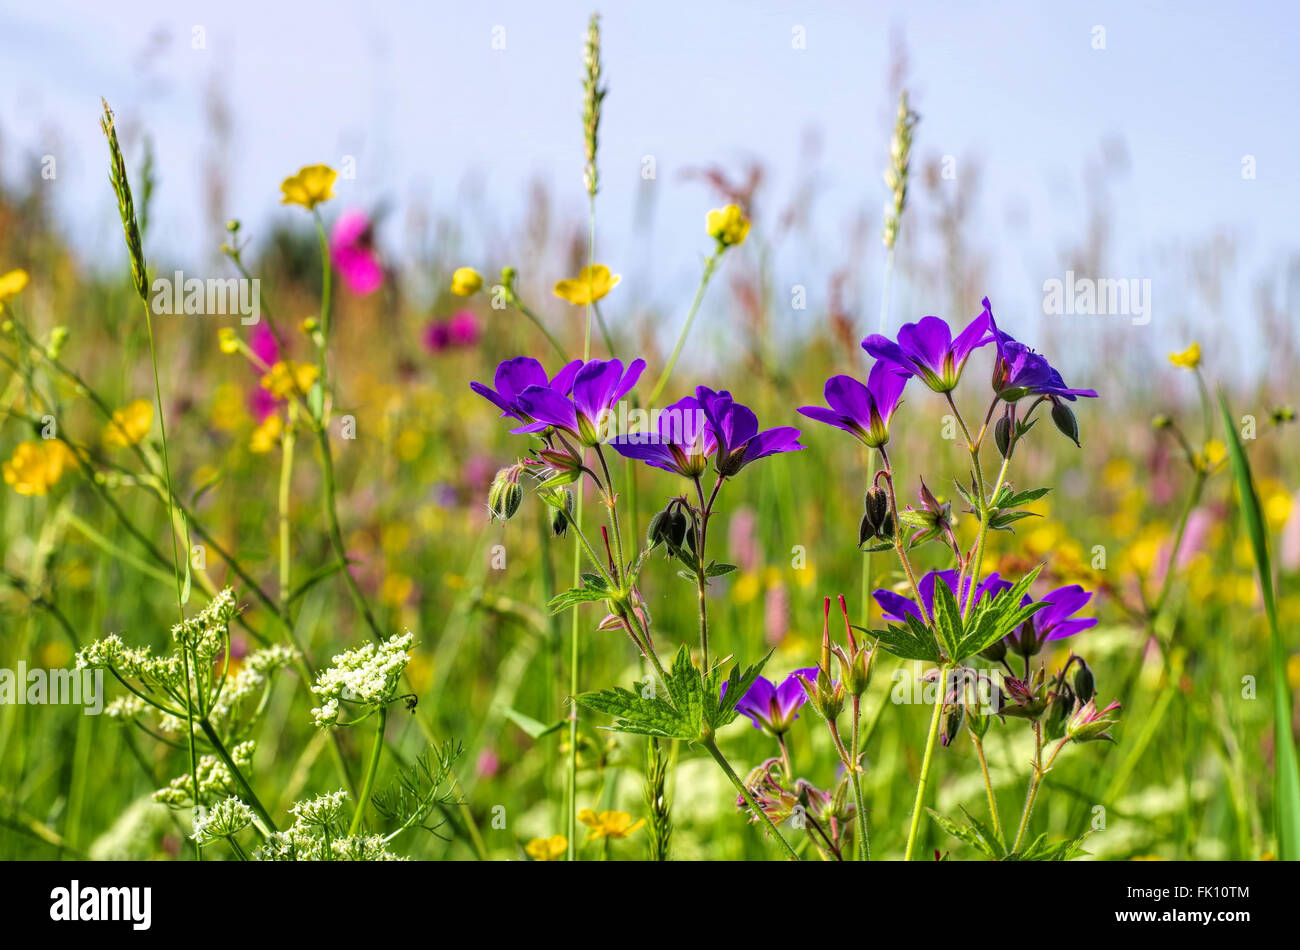 Bergwiesen im Frühling - spring flower meadows in mountains in many colours - Stock Image